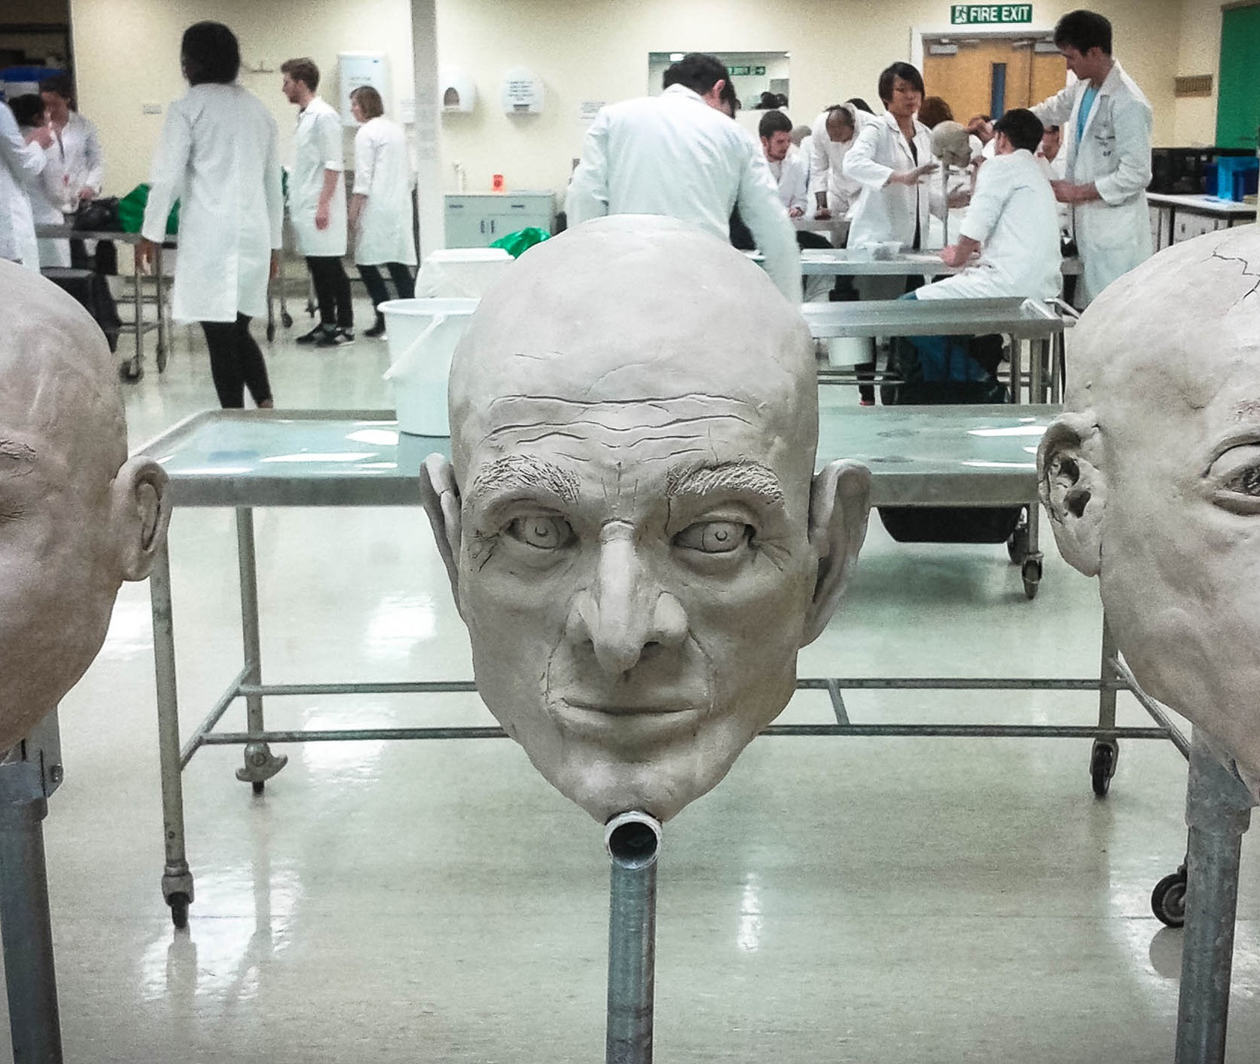 Forensic Facial Reconstruction: Finding Mr. X